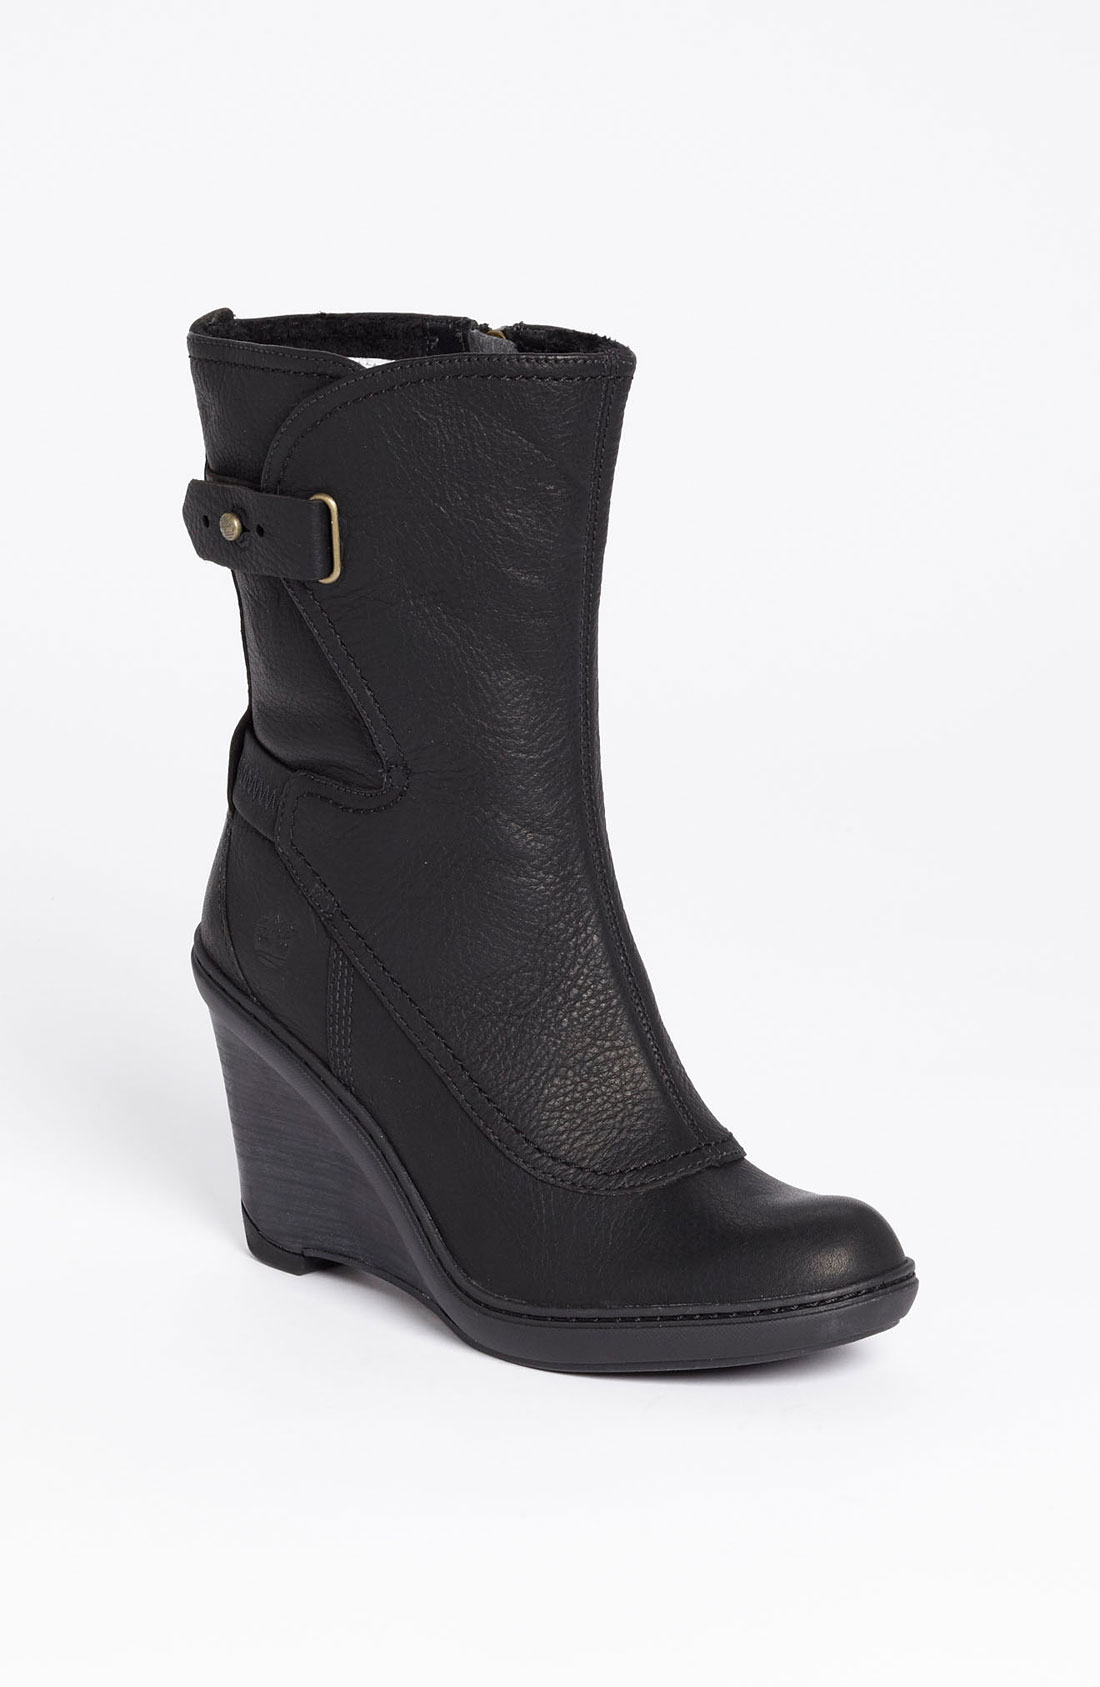 timberland stratham heights wedge boot in black lyst